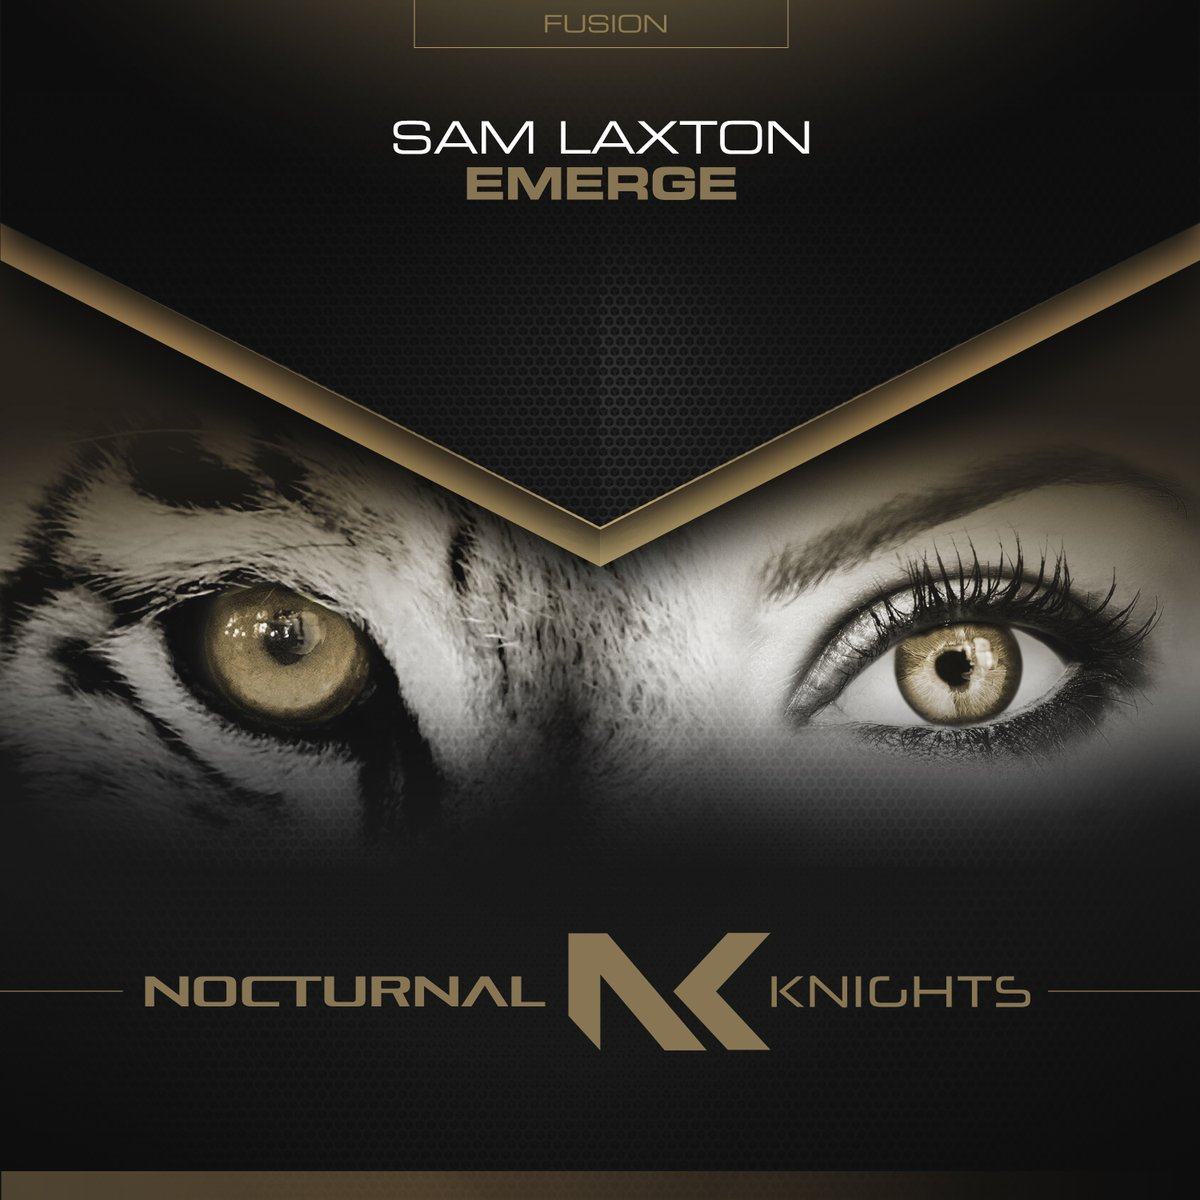 'Emerge' contains the usual uplifting elements as we know from @SamLaxtonDJ with a Fusion twist! 💥  'Emerge' will be released THIS MONDAY! Get your pre-order now! ⬇️ https://t.co/mB0k7bIyZb https://t.co/4vN3NifRlD